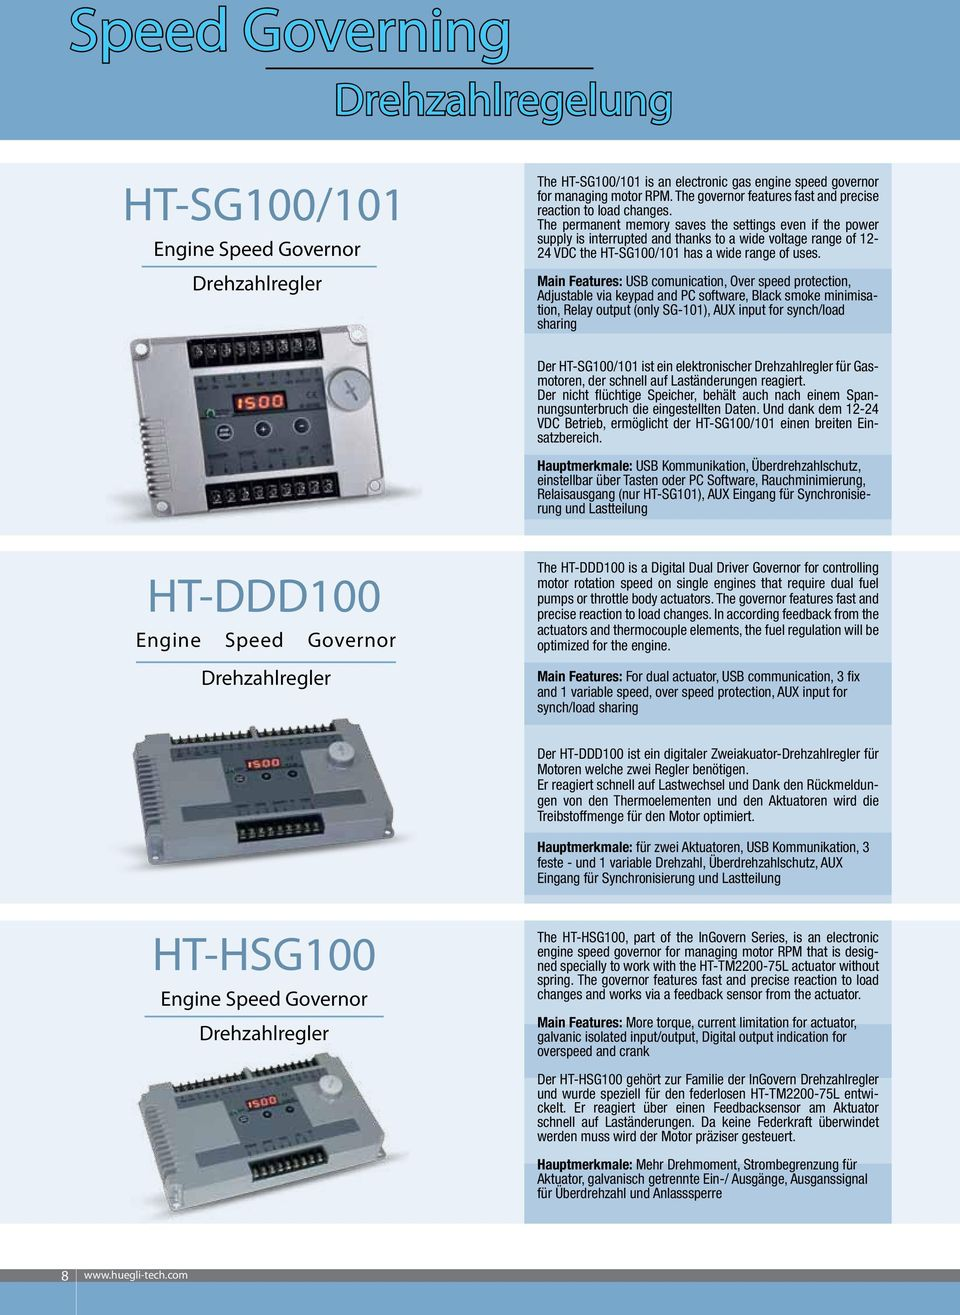 The permanent memory saves the settings even if the power supply is interrupted and thanks to a wide voltage range of 12-24 VDC the HT-SG100/101 has a wide range of uses.